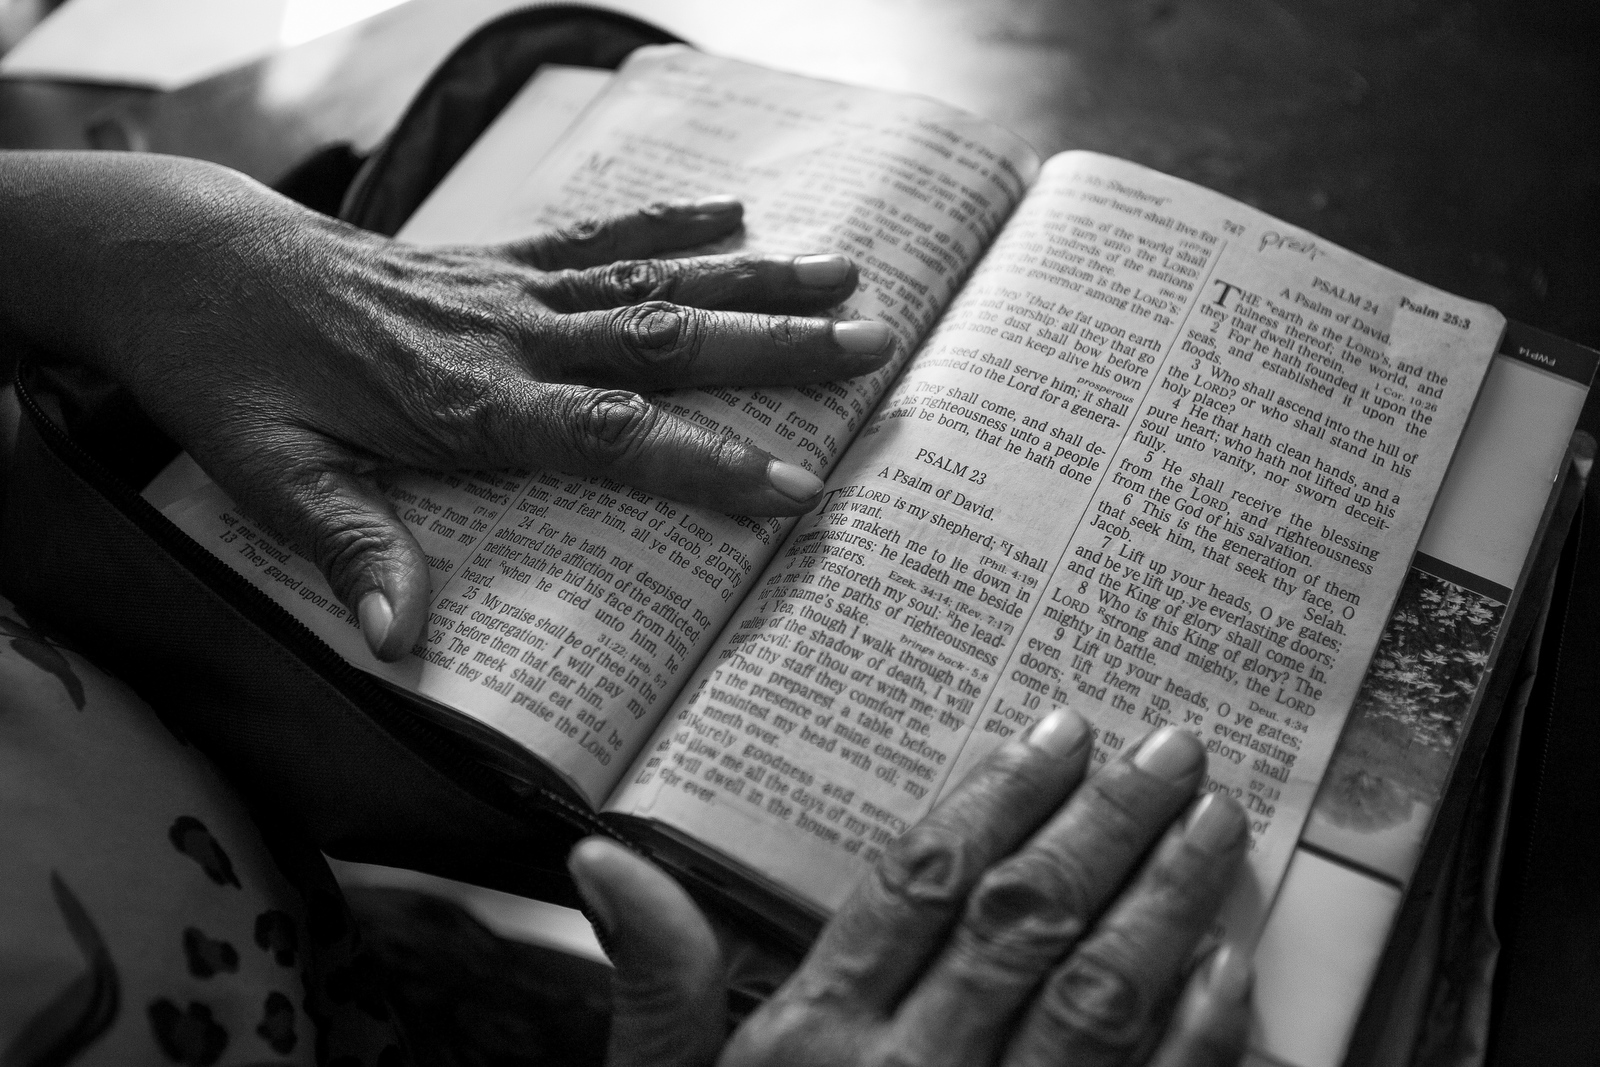 Imogene Davis opens the Bible to her favorite Psalm at her house in Belle Glade. Imogene's previous home caught fire and the family lost everything. Imogene says that her faith helps to keep her going, but sometimes she gets overwhelmed and can't stop crying.